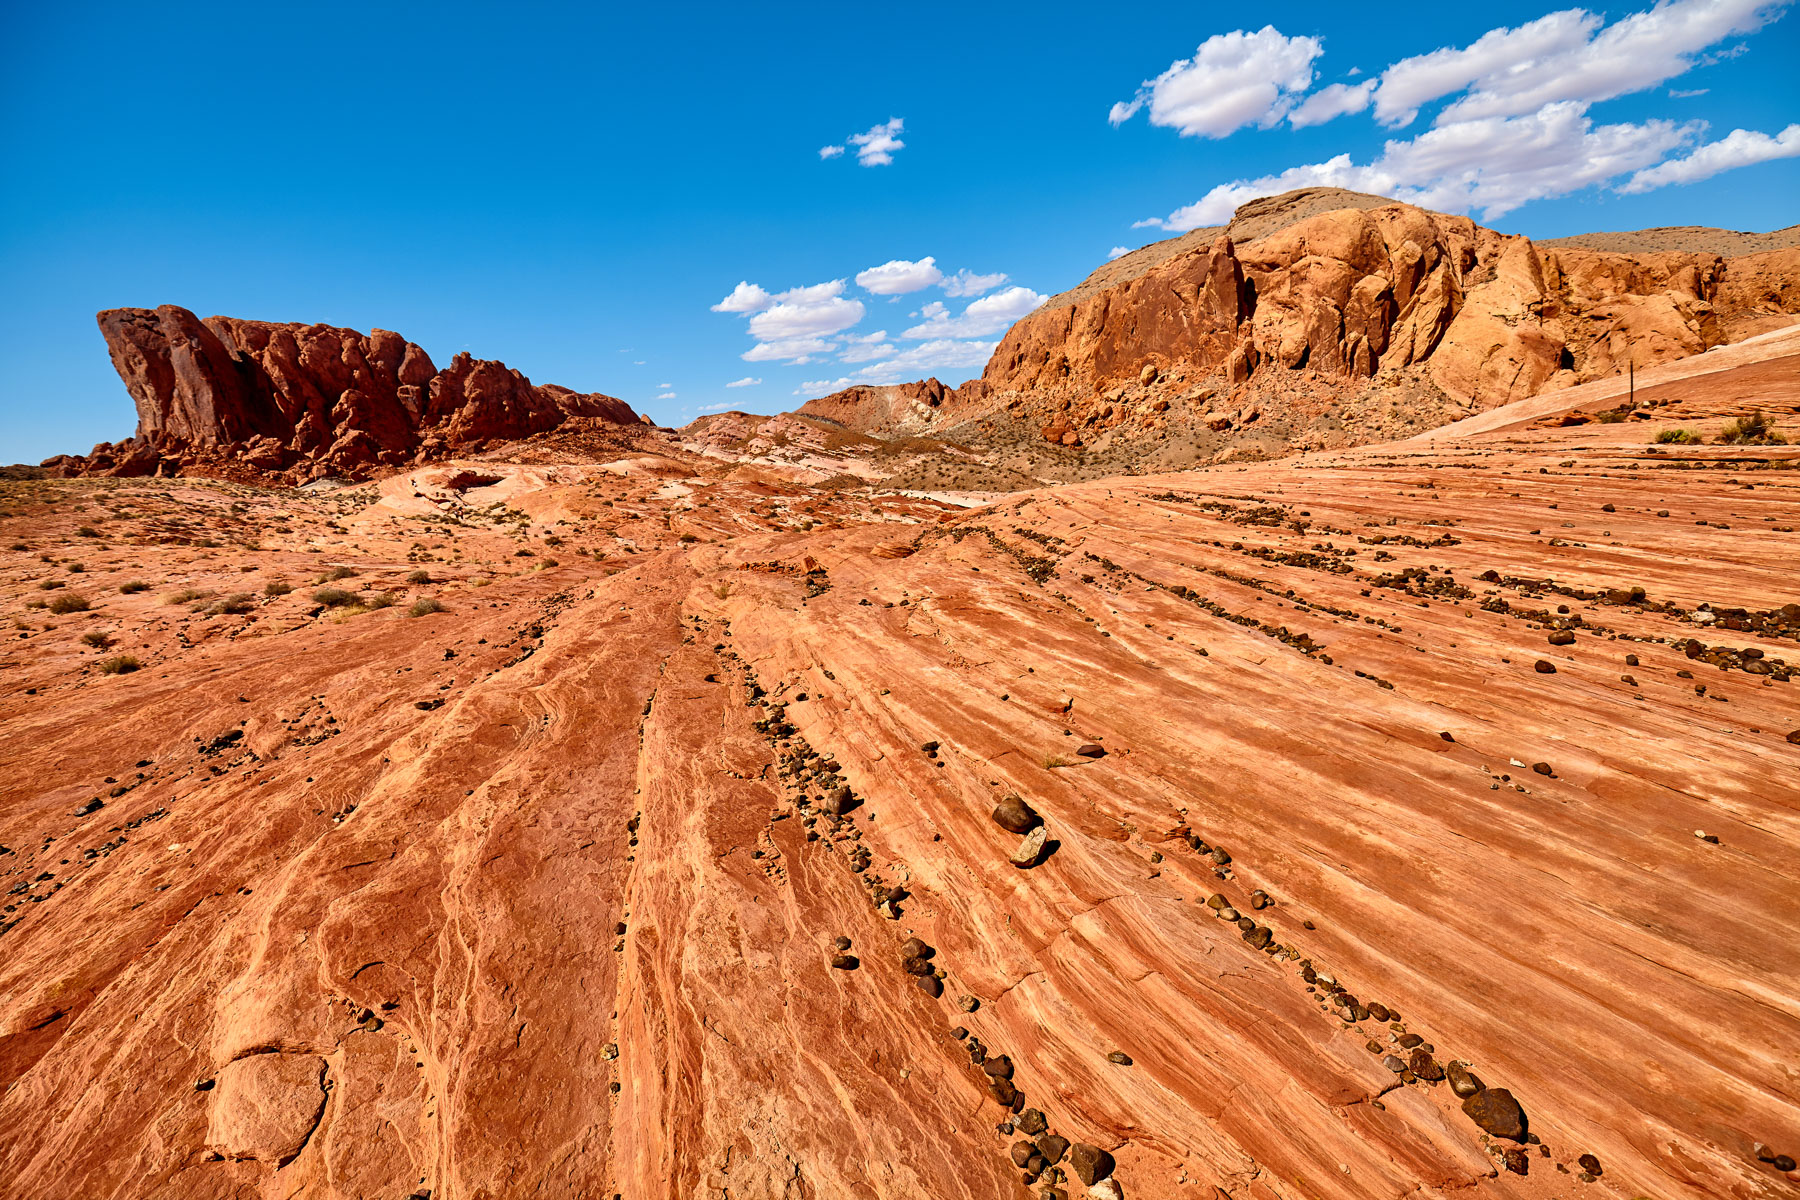 Beautiful rock formations in the Valley of Fire State Park, Nevada, USA.